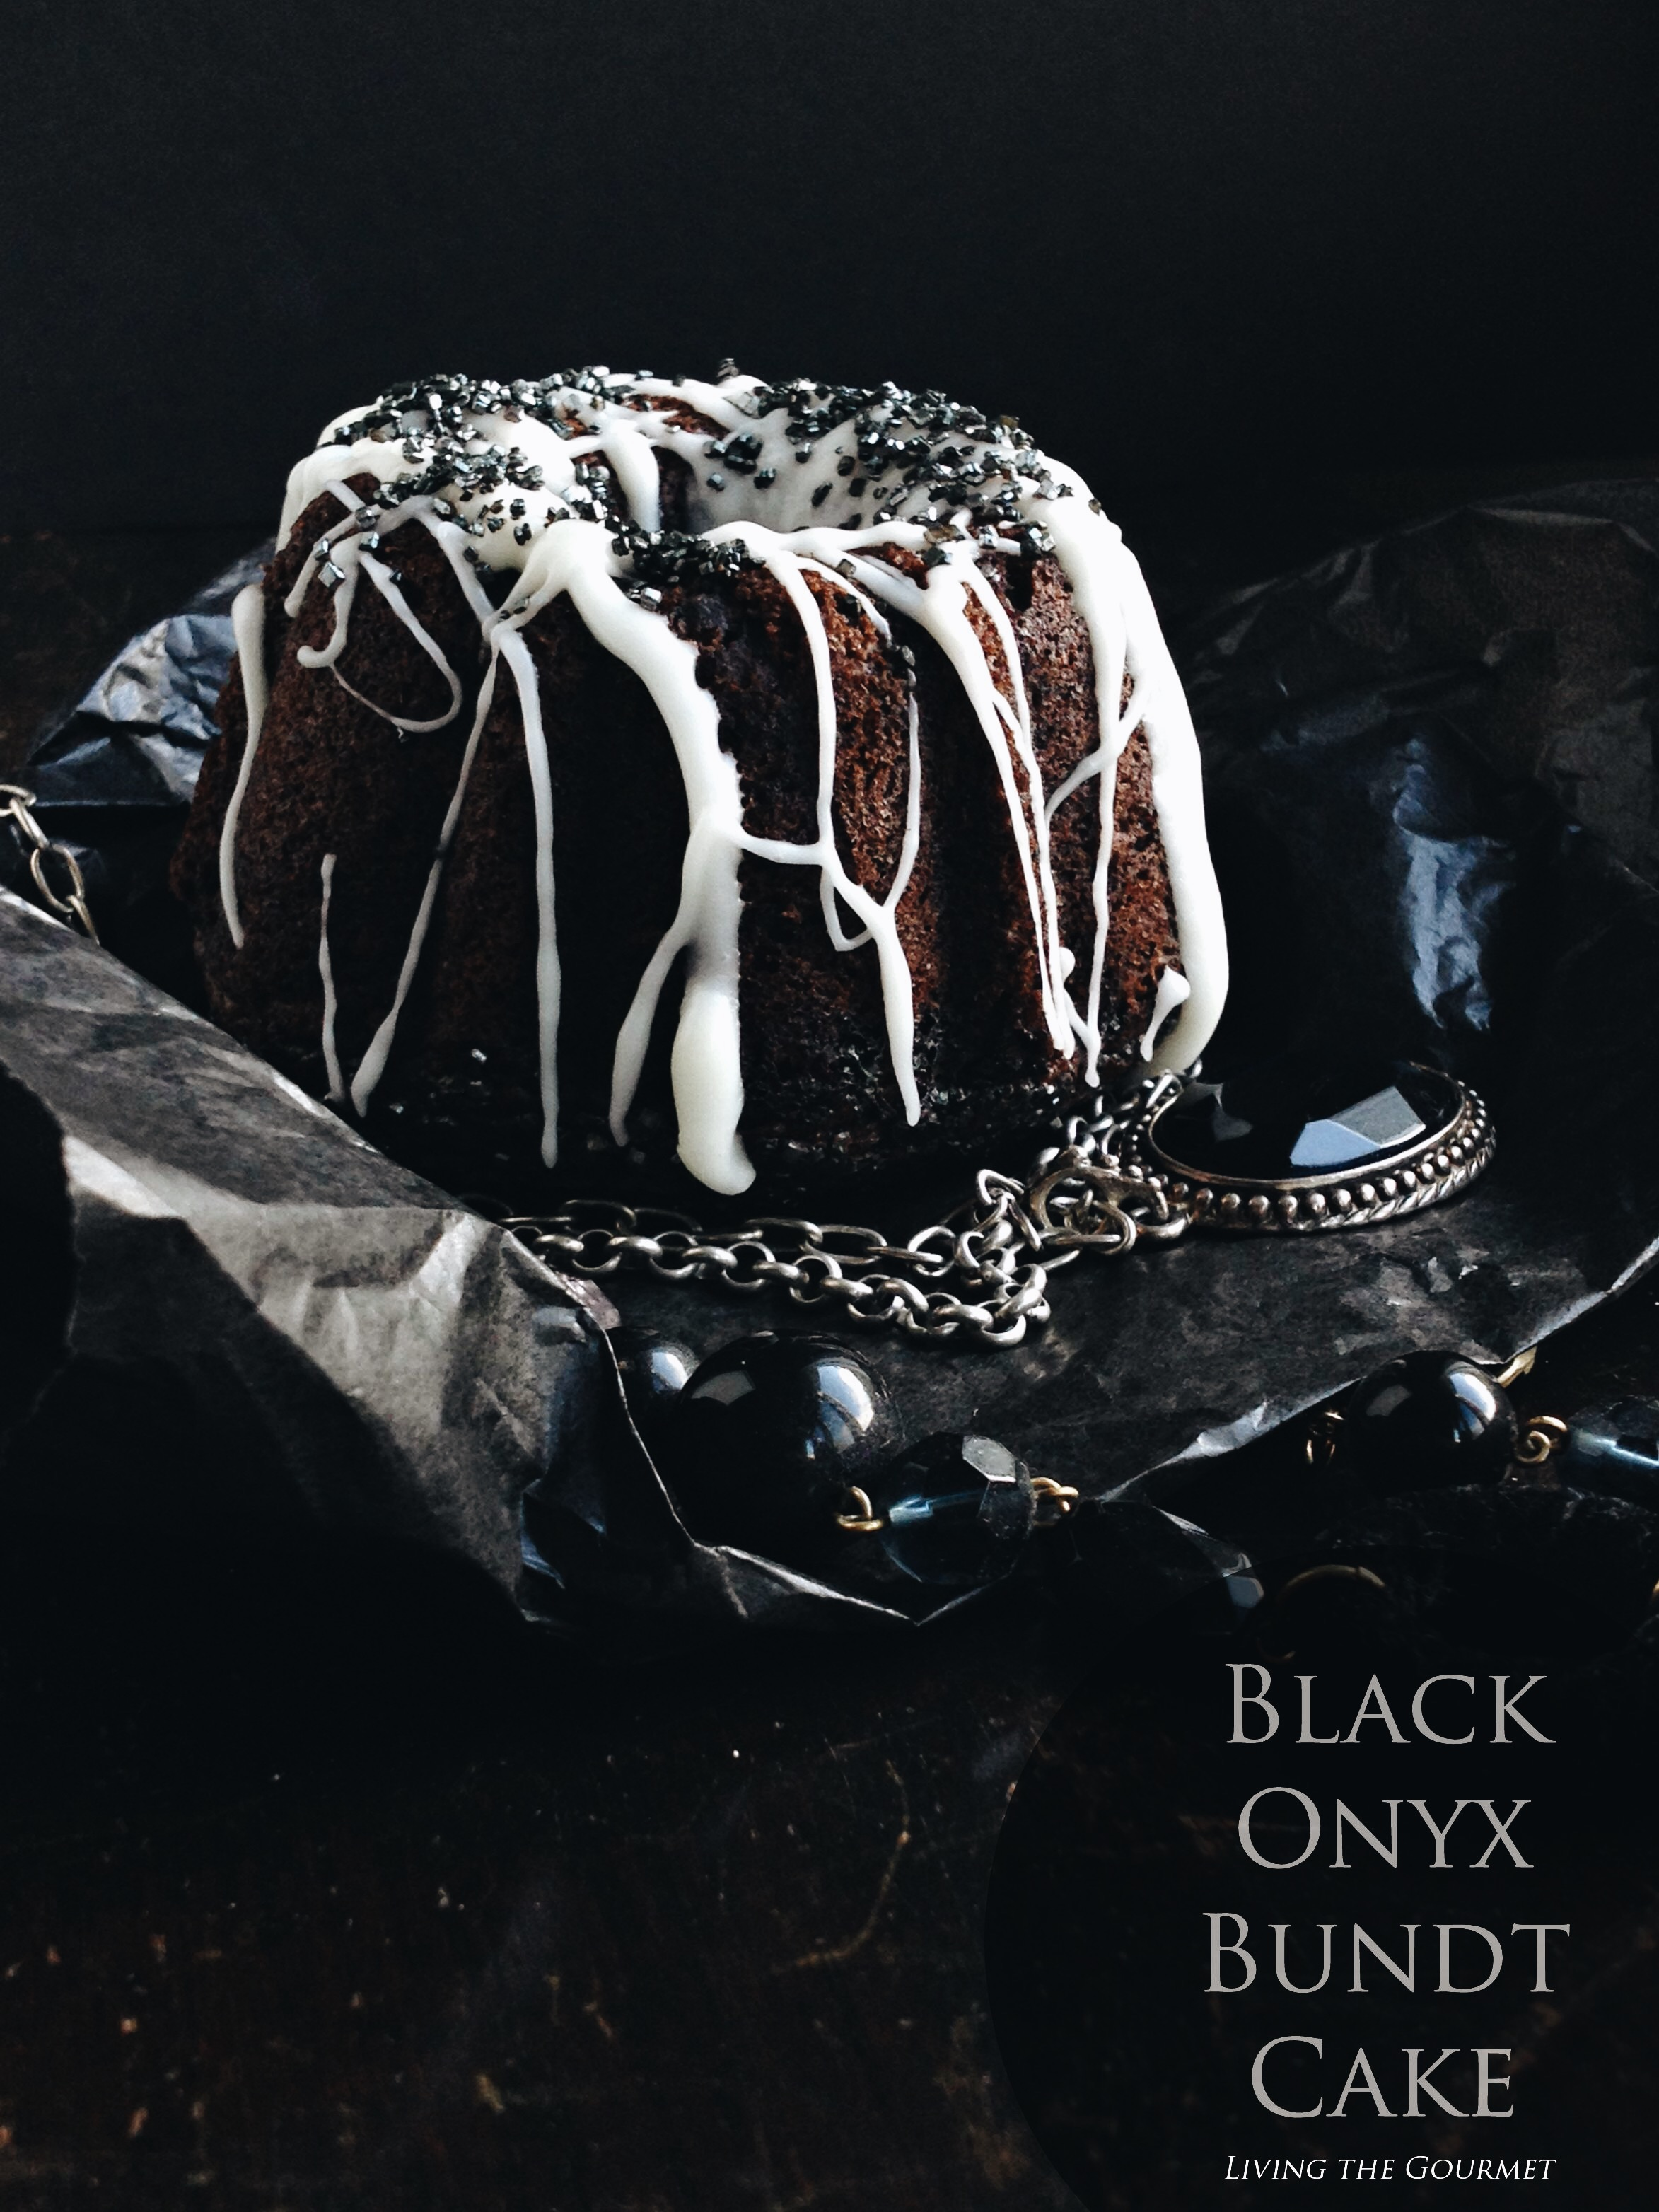 Living the Gourmet: Black Onyx Bundt Cake #BundtBakers